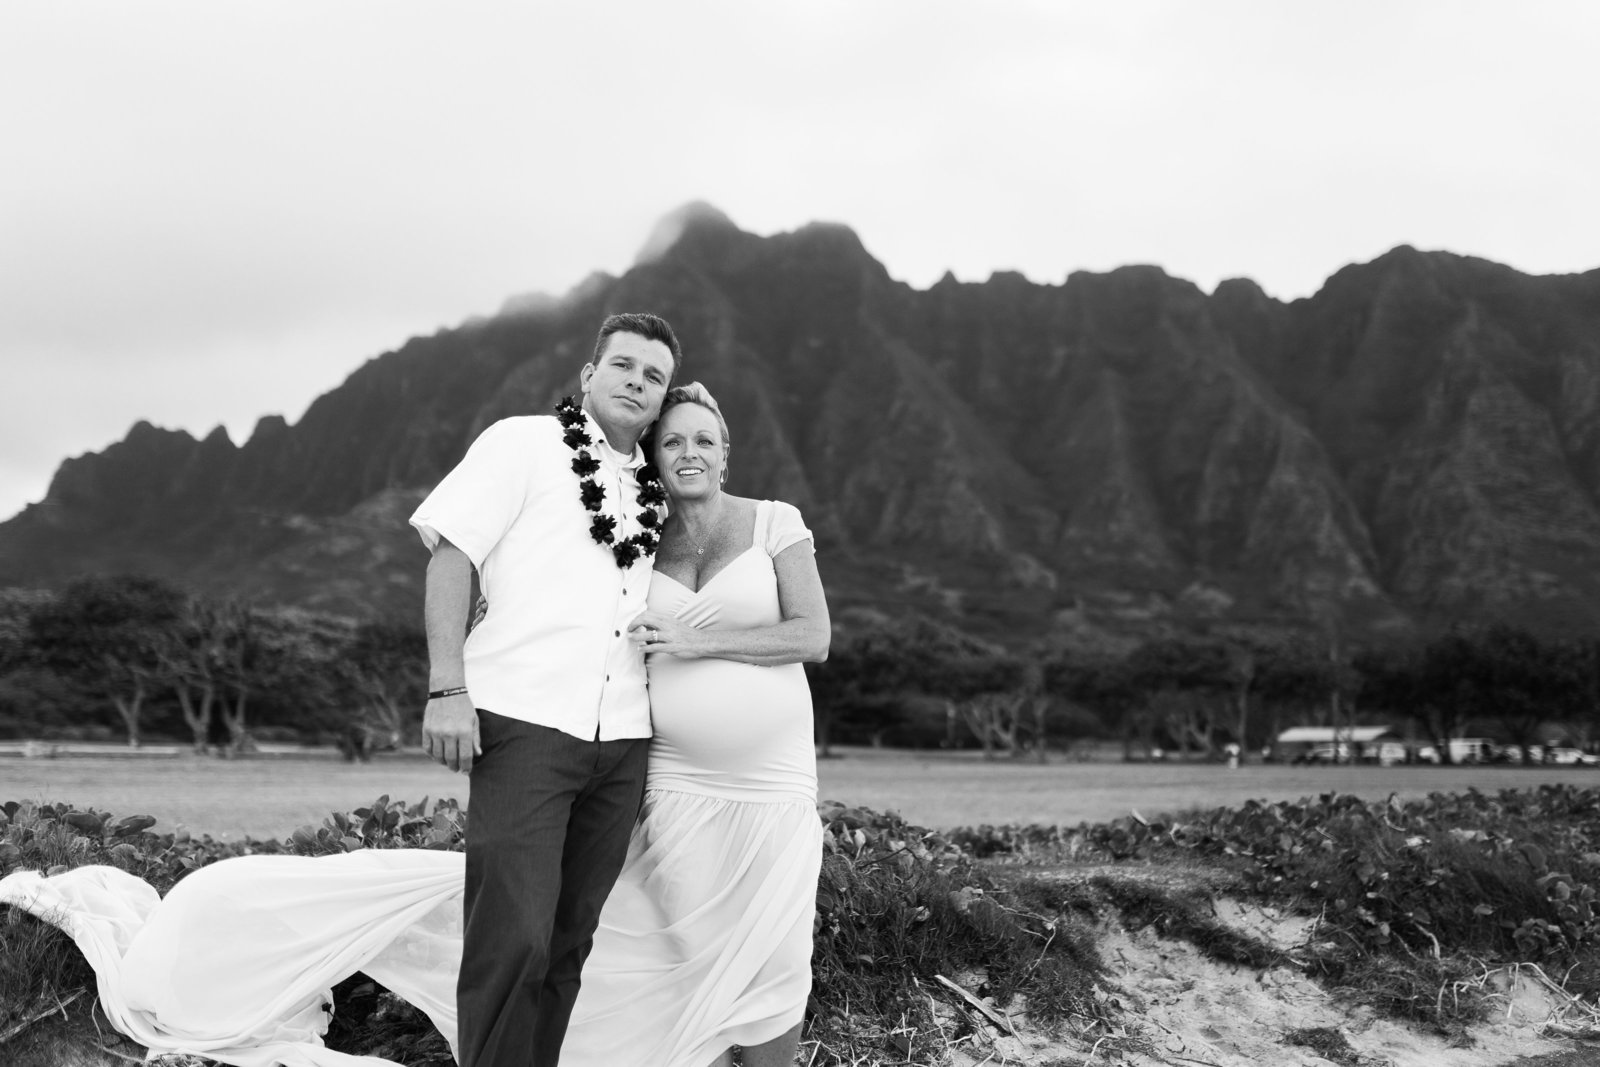 maternity Photoshoot Kualoa Beach Oahu Hawaii Brooke flanagan Photography-5